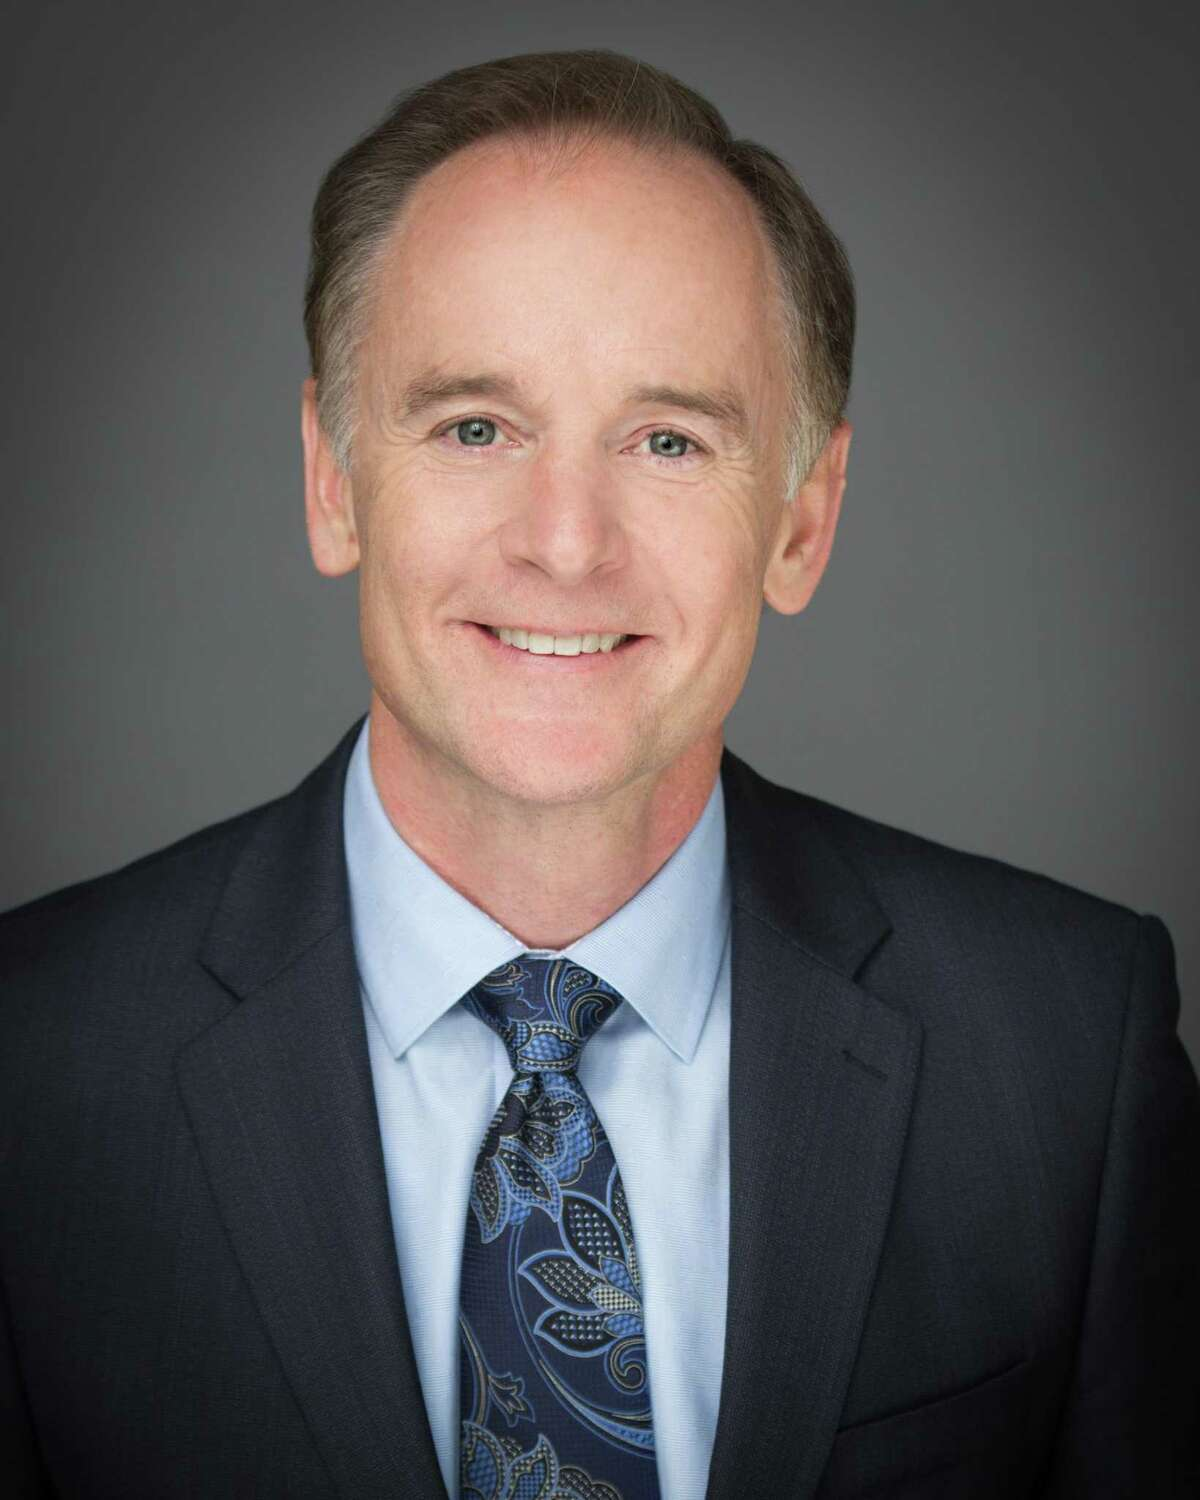 Allen Harrison was appointed President and Chief Executive Officer of Methodist Healthcare System of San Antonio in 2018. On April 1, he told employees he would take a 30 percent cut in salary during the coronavirus pandemic.